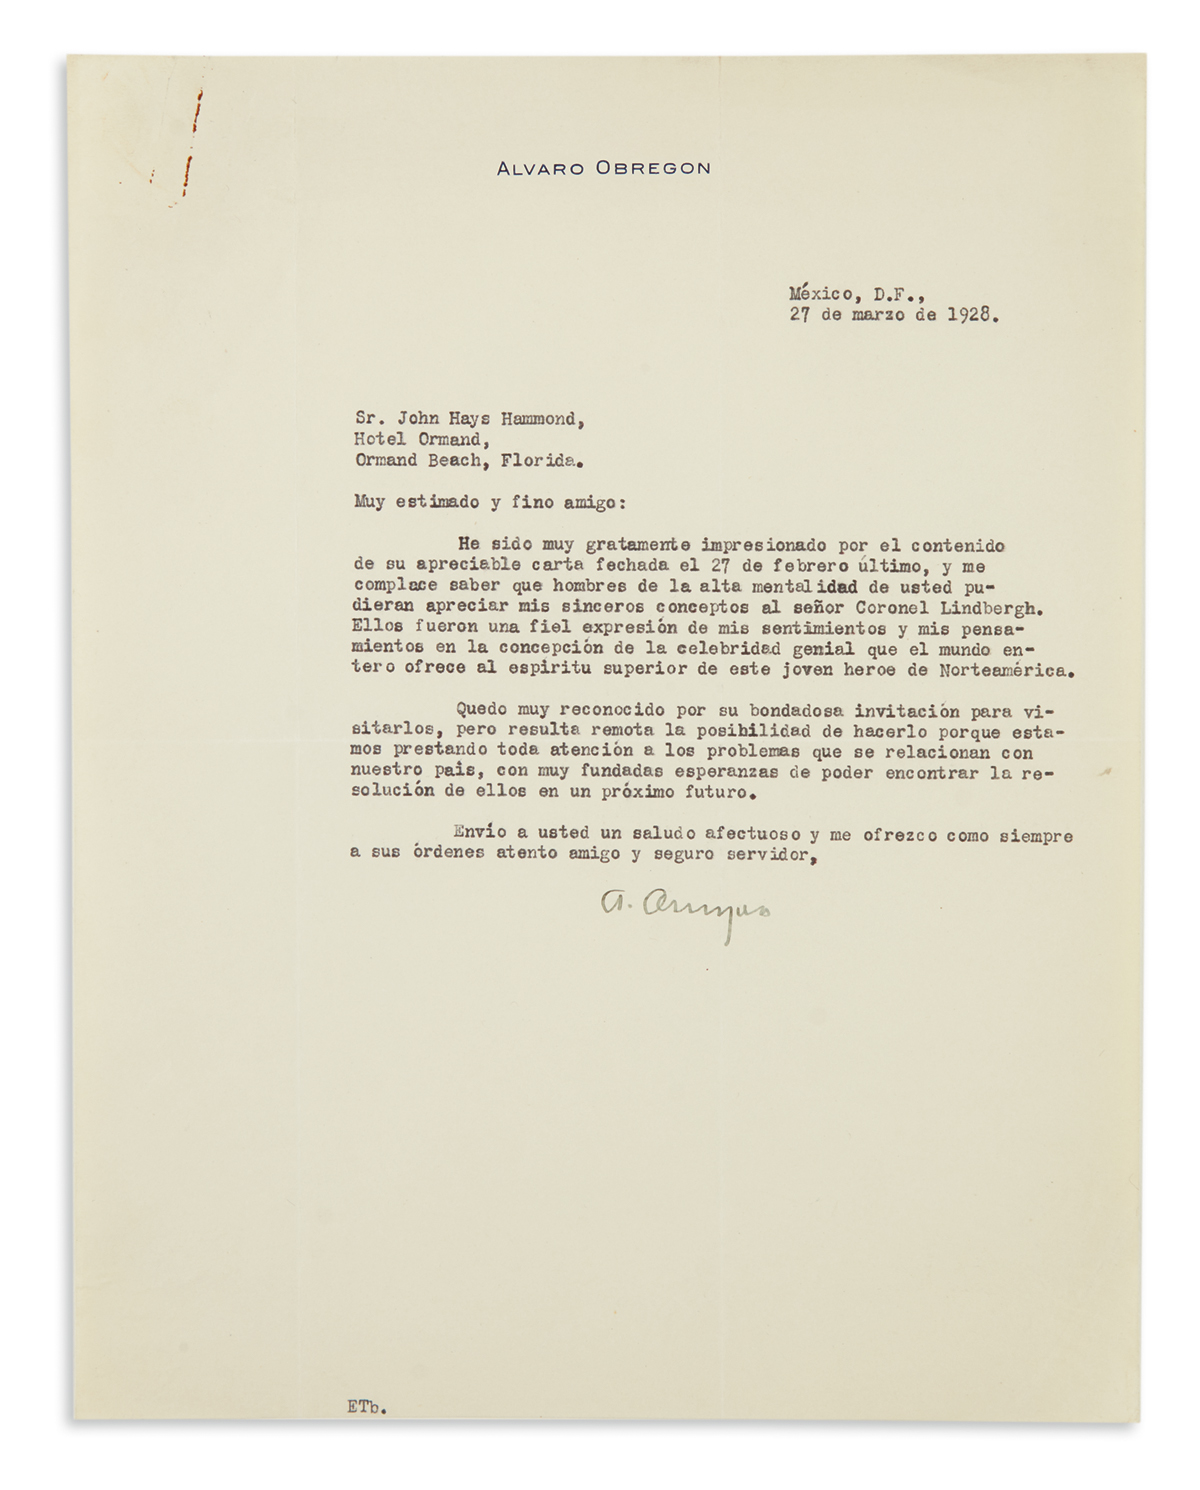 OBREGÓN-ÁLVARO-Group-of-4-Typed-Letters-Signed-AObregon-to-J